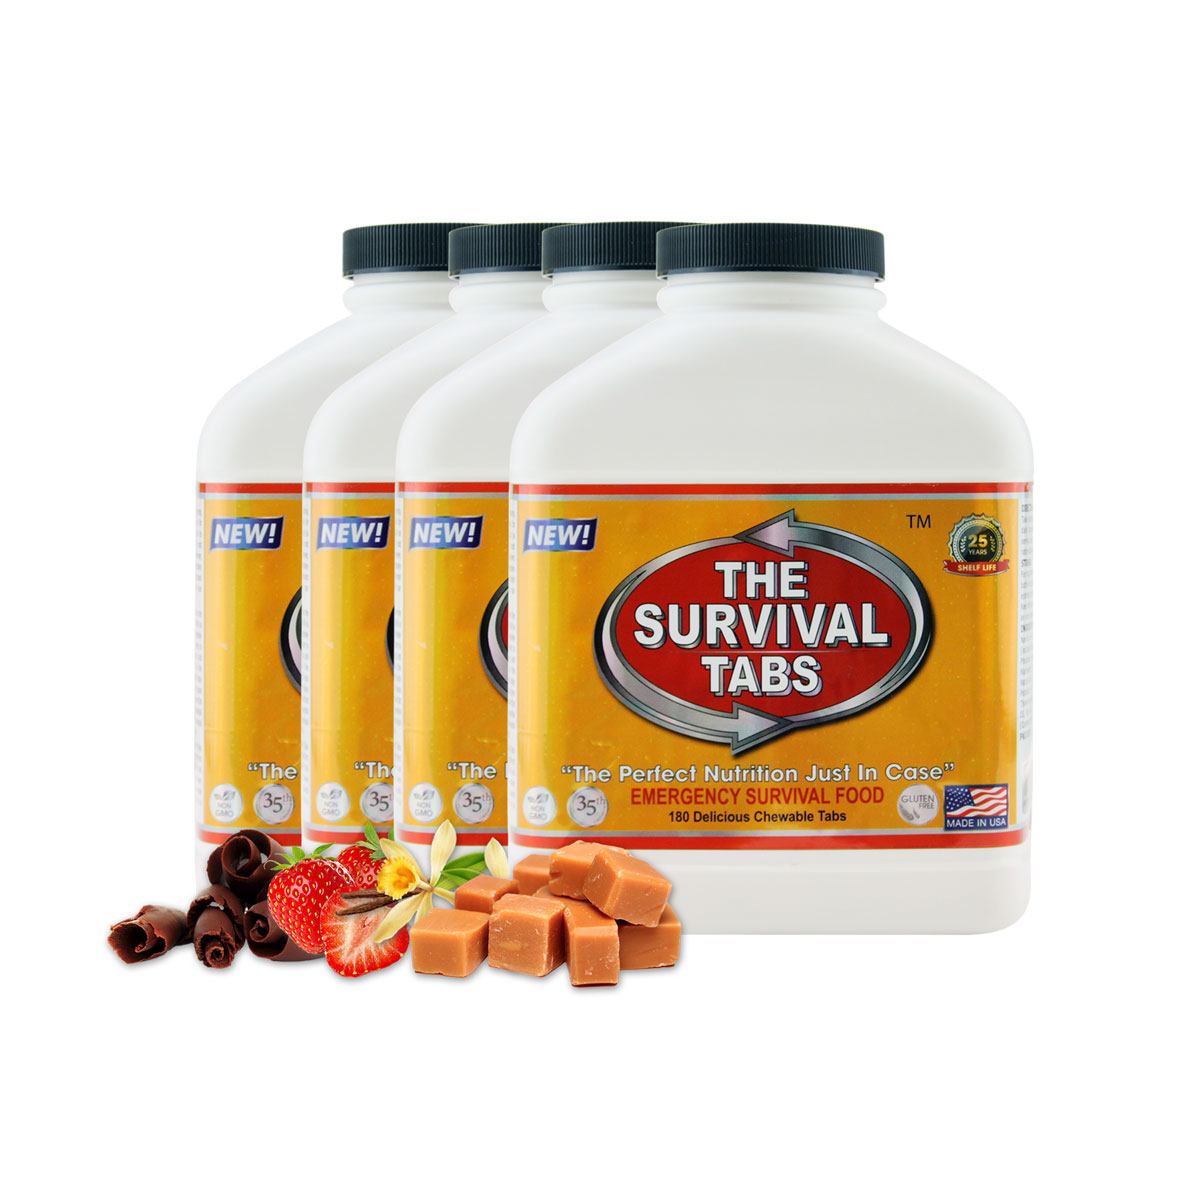 Survival Tabs 60 Day 720 Tabs Emergency Food Survival MREs Meal Replacement for Disaster Preparedness Gluten Free and Non-GMO 25 Years Shelf Life Long Term - Mixed Flavor